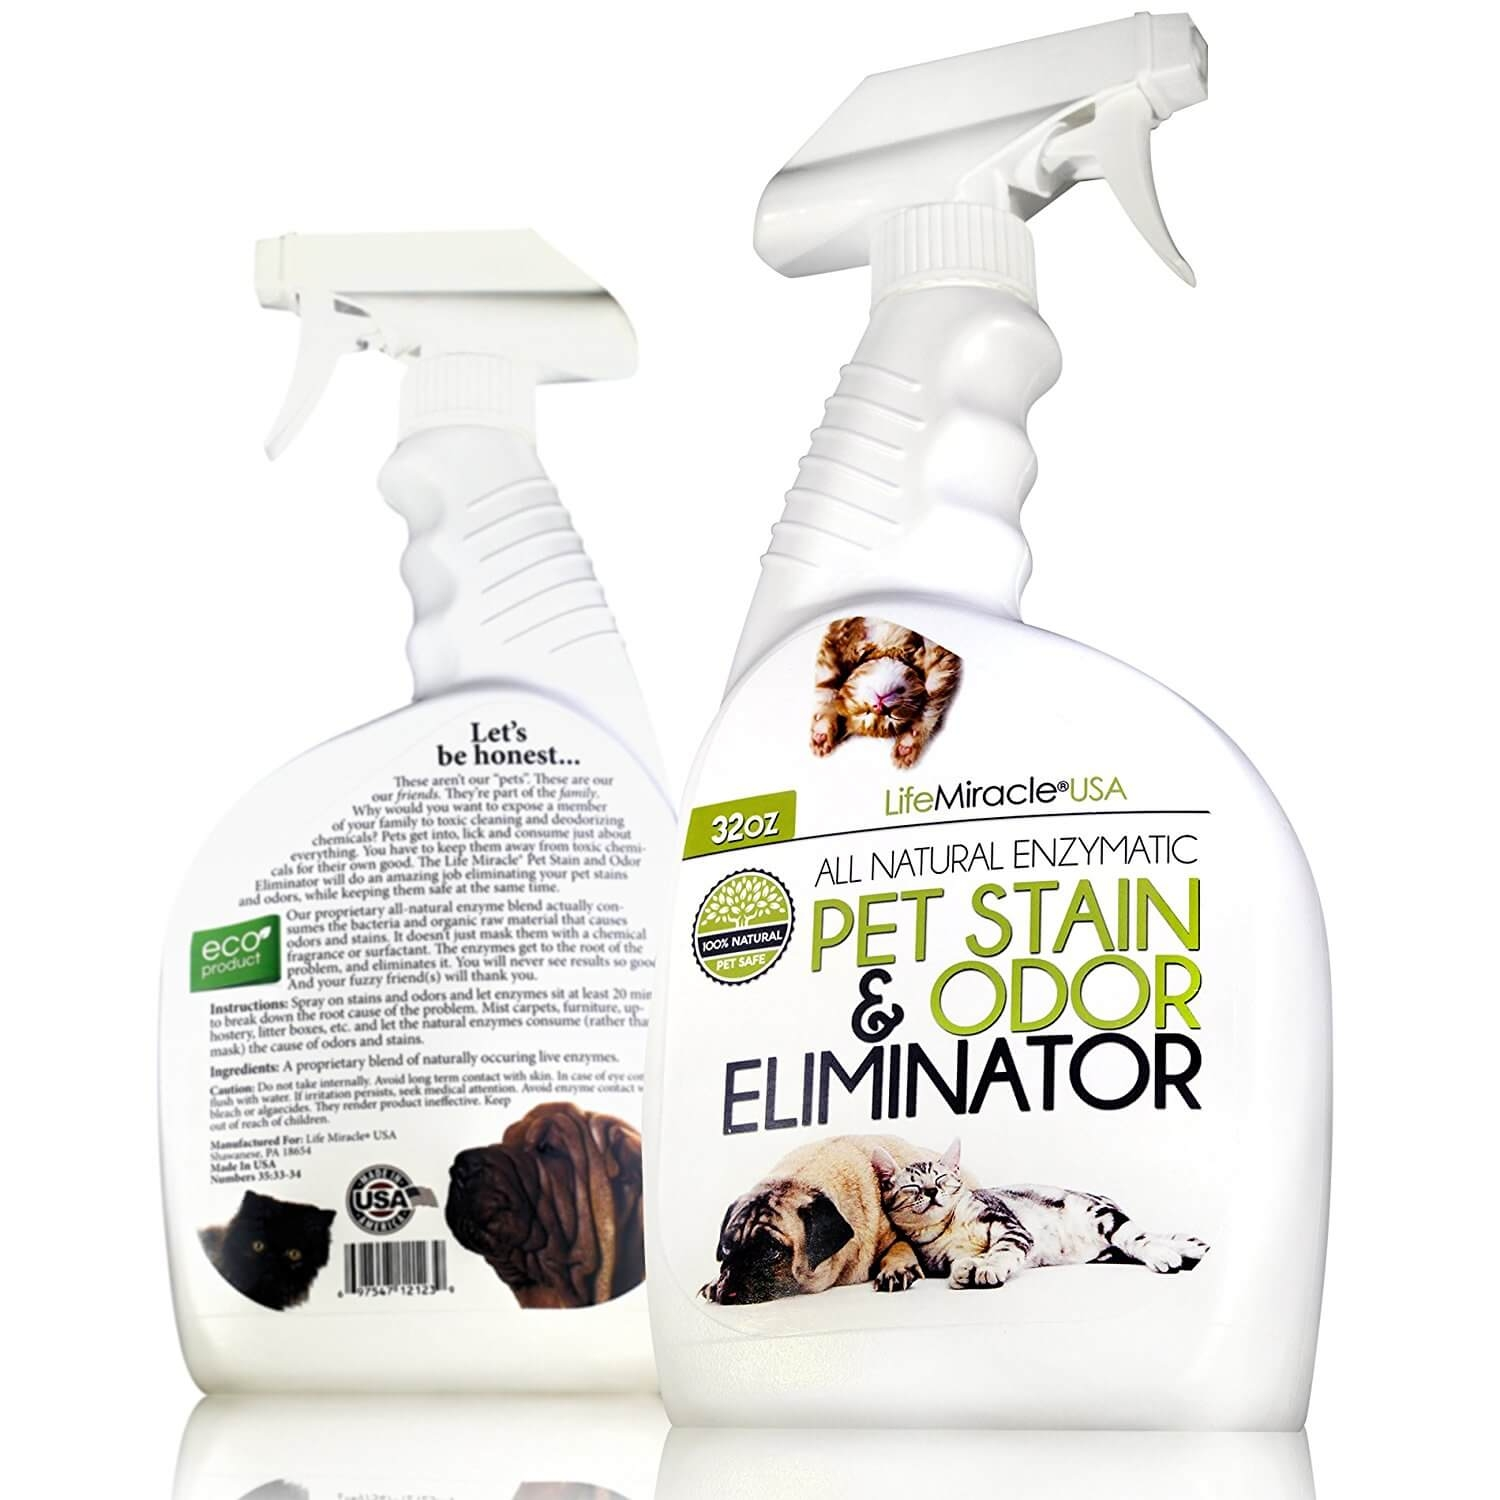 Pet Stain and Odor Eliminator - Life